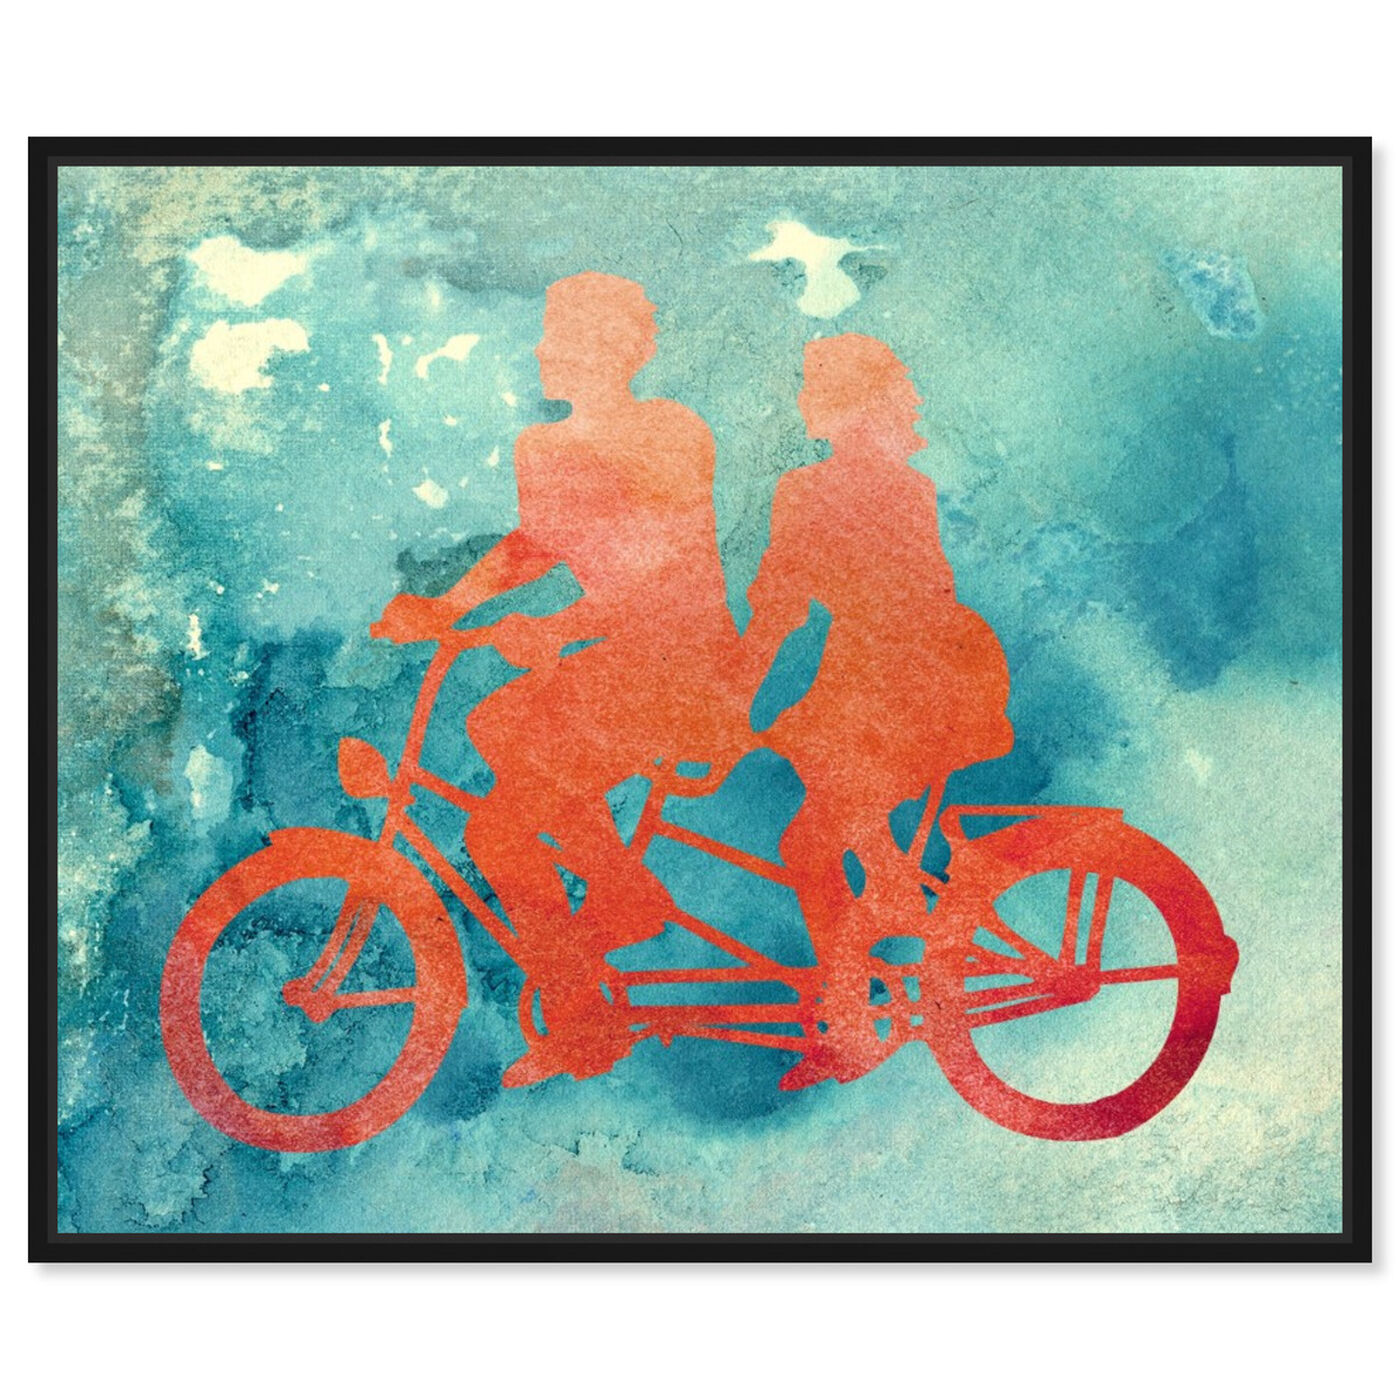 Front view of La Bicyclette featuring transportation and bicycles art.